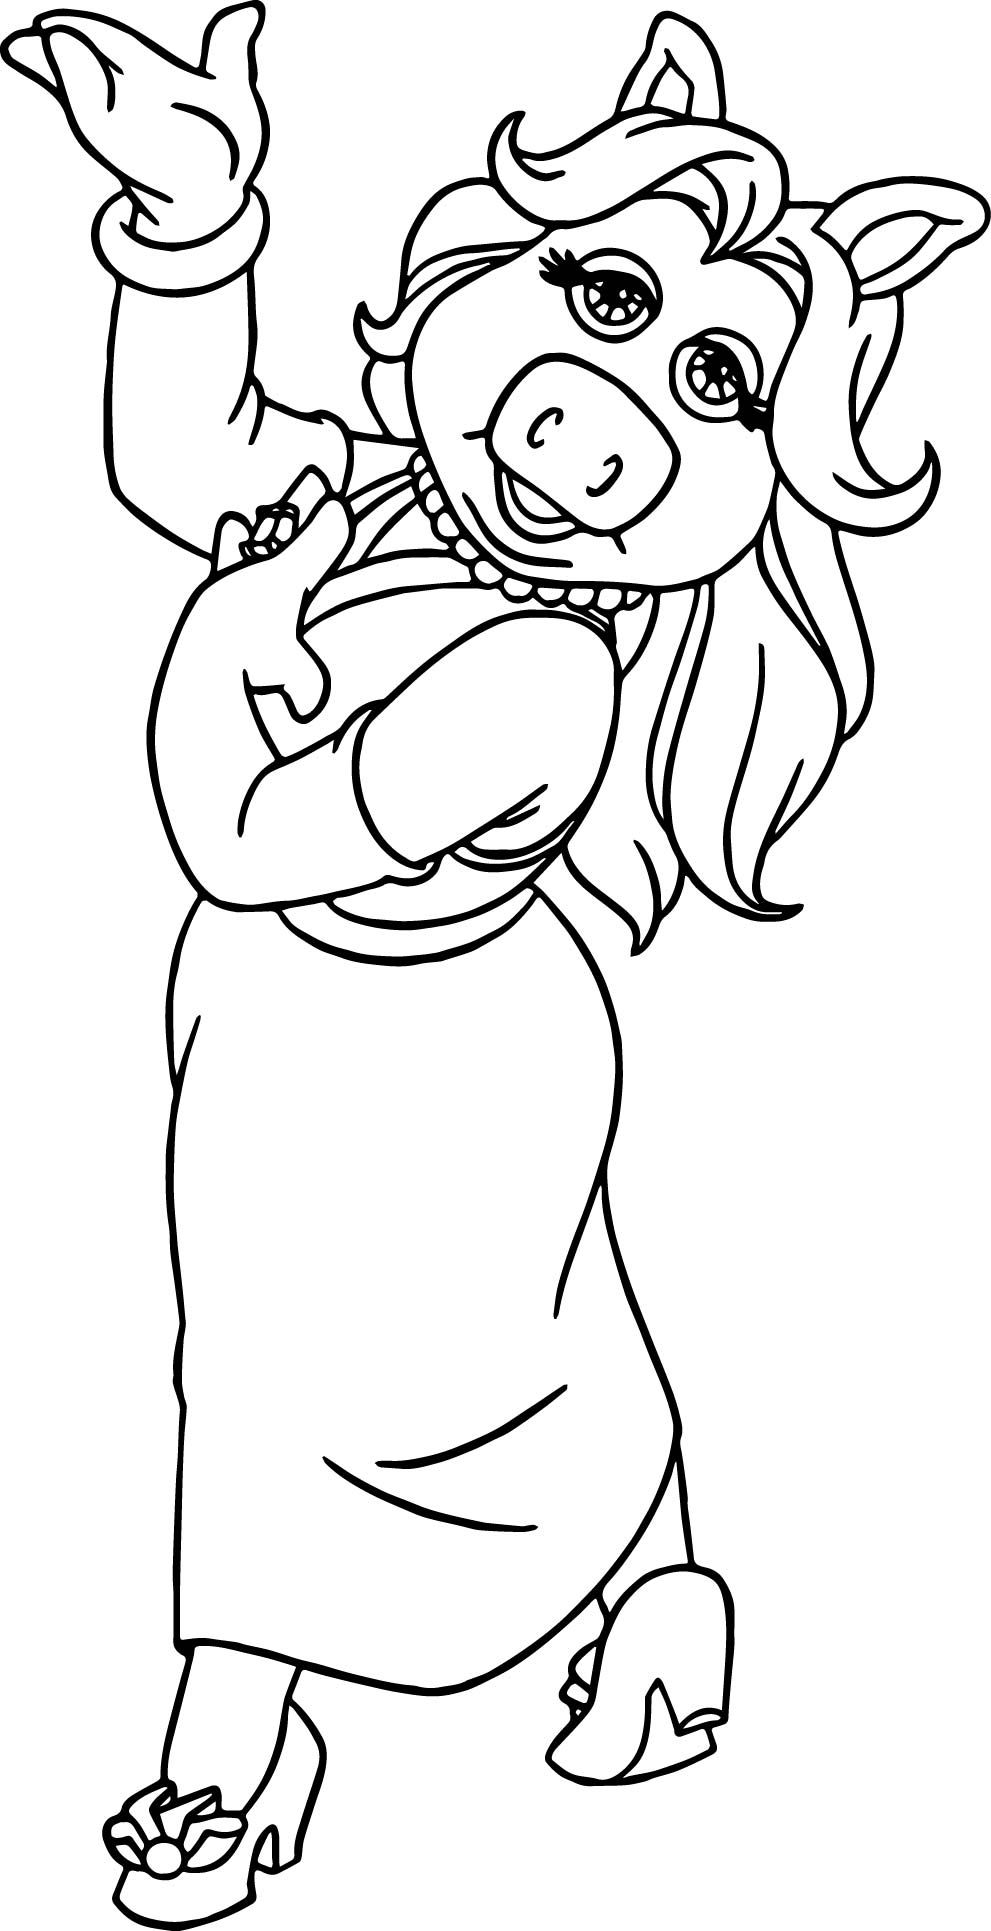 Miss Piggy From Muppet Babies Coloring Pages : Bulk Color | 1931x991